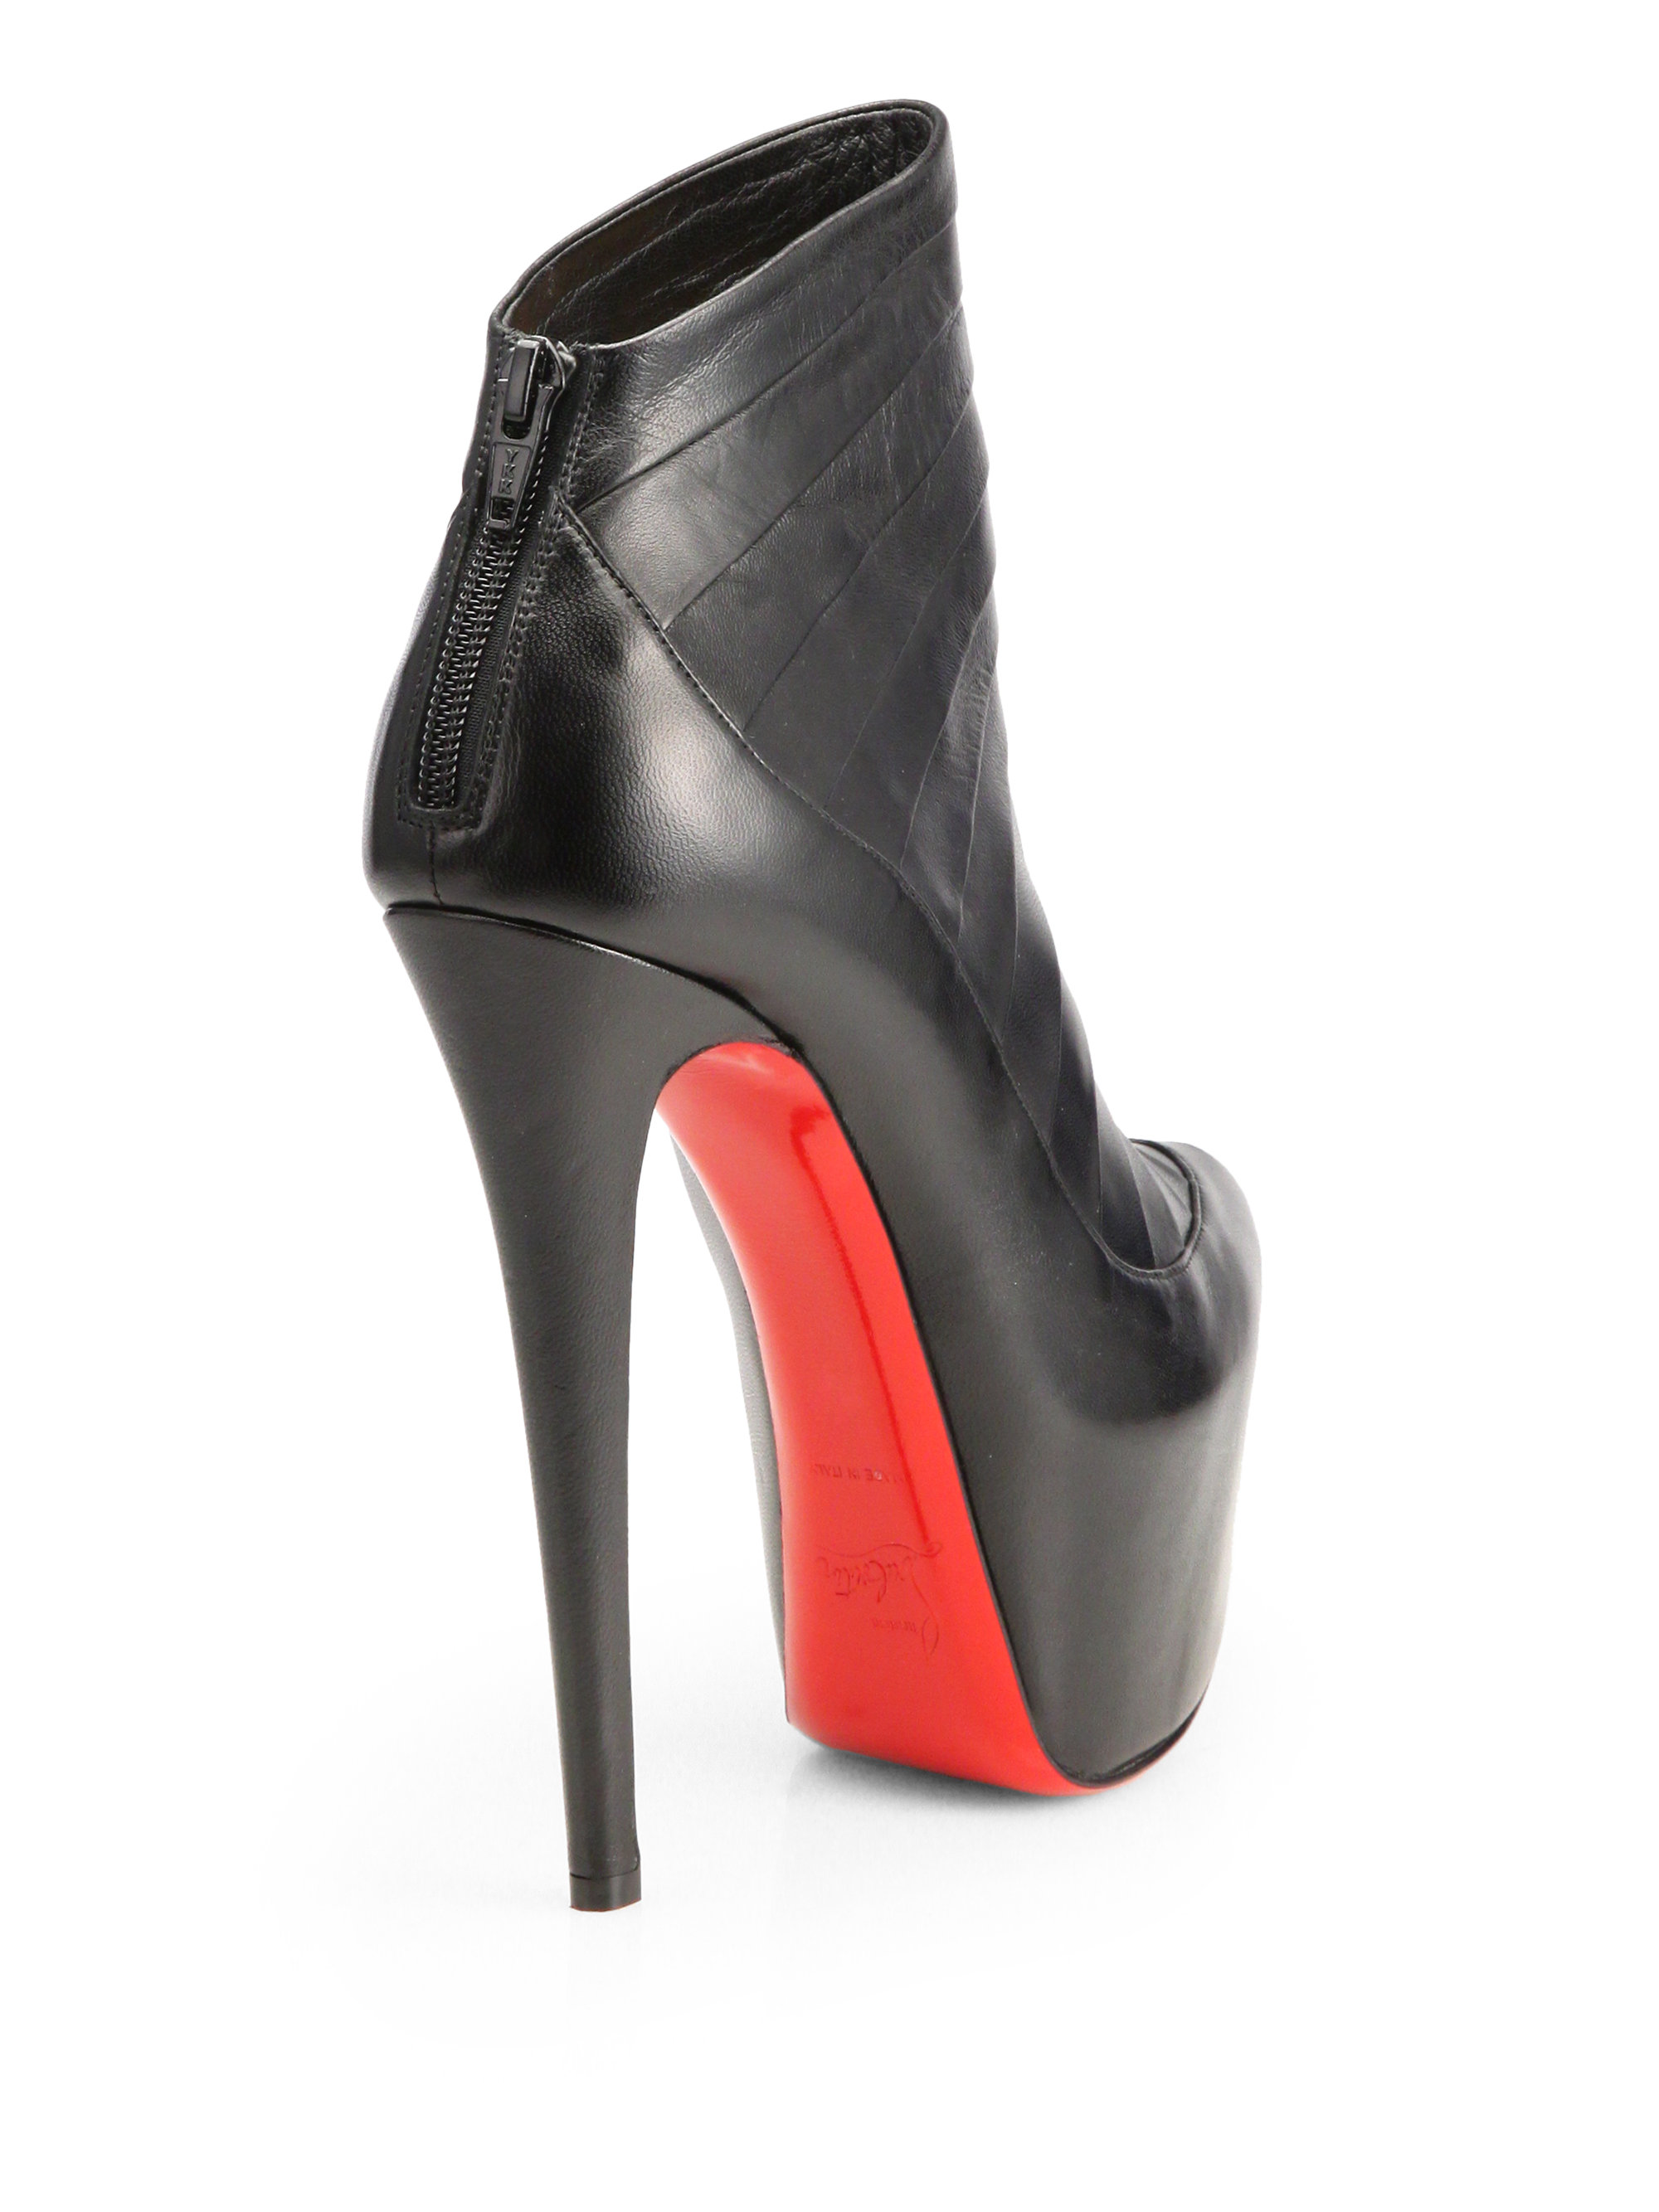 ddcdbf812142 ... amazon lyst christian louboutin amor leather platform ankle boots in  black d0f38 69cc6